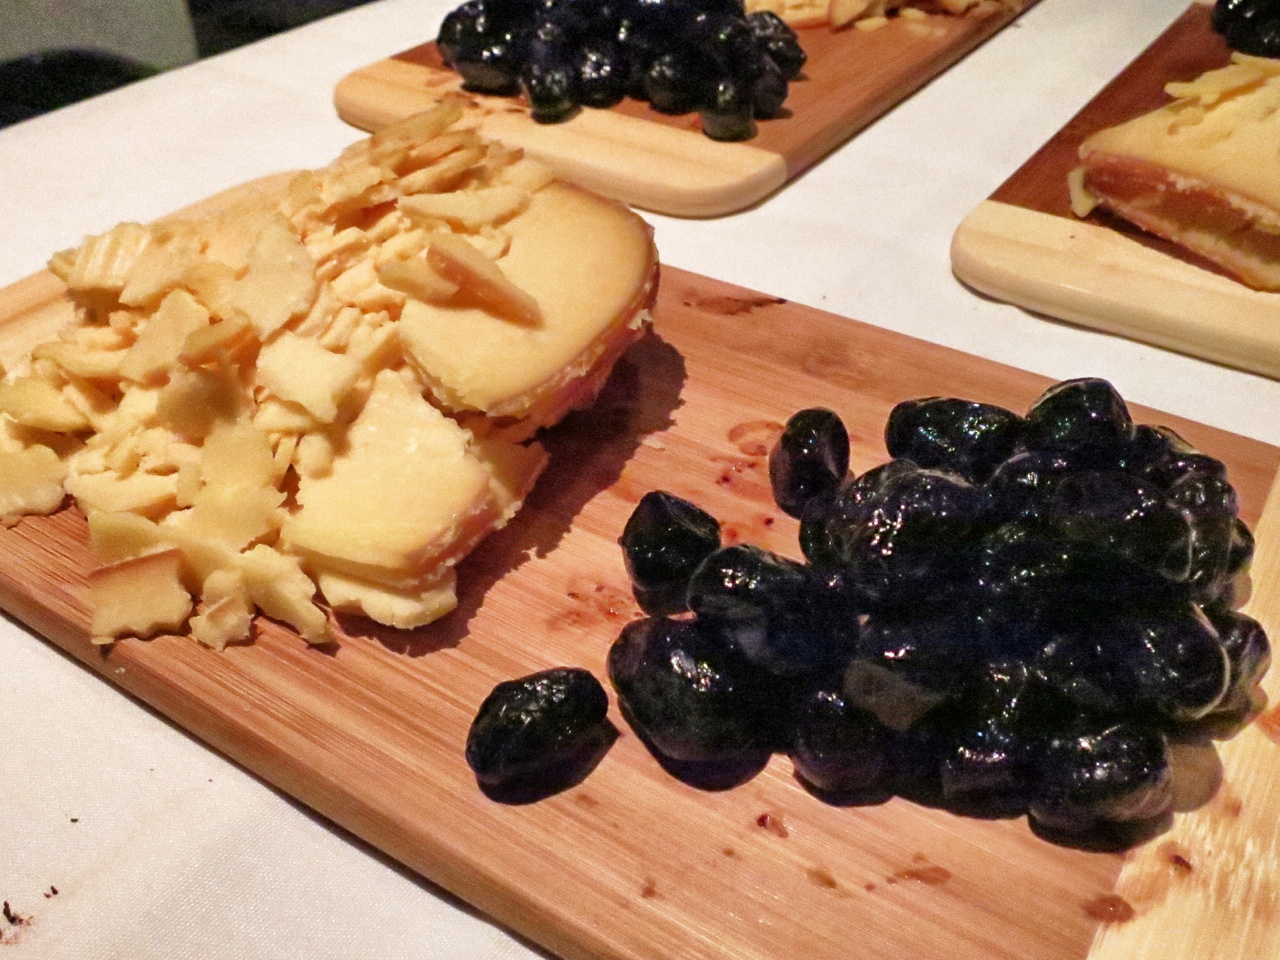 Imperial Amber Food Pairing of Smoked Gouda and Sun-Dried Olives